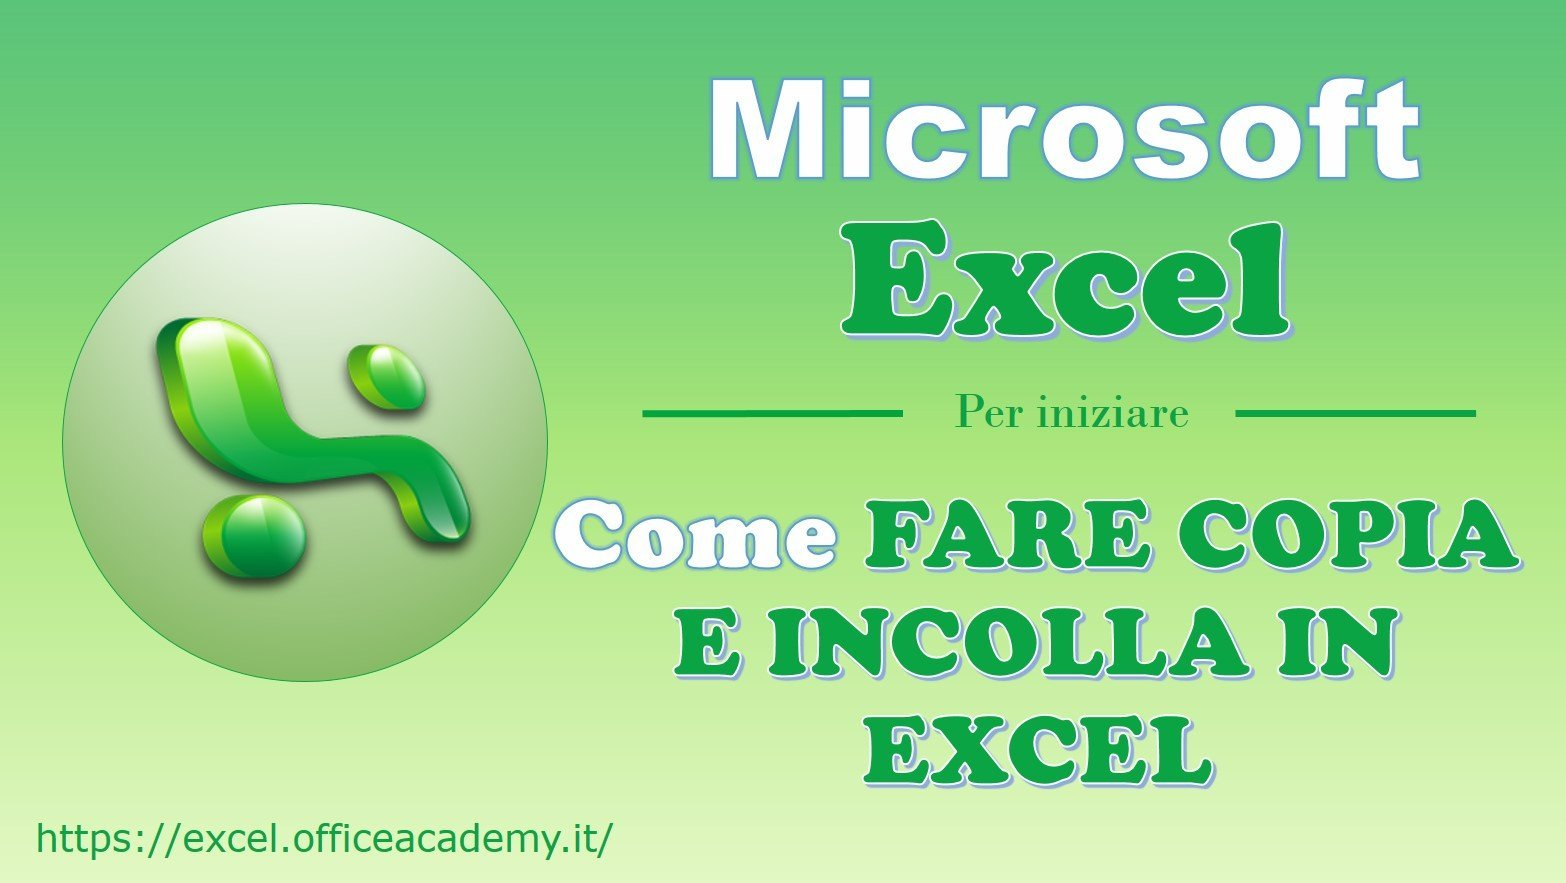 Come fare copia e incolla in Excel